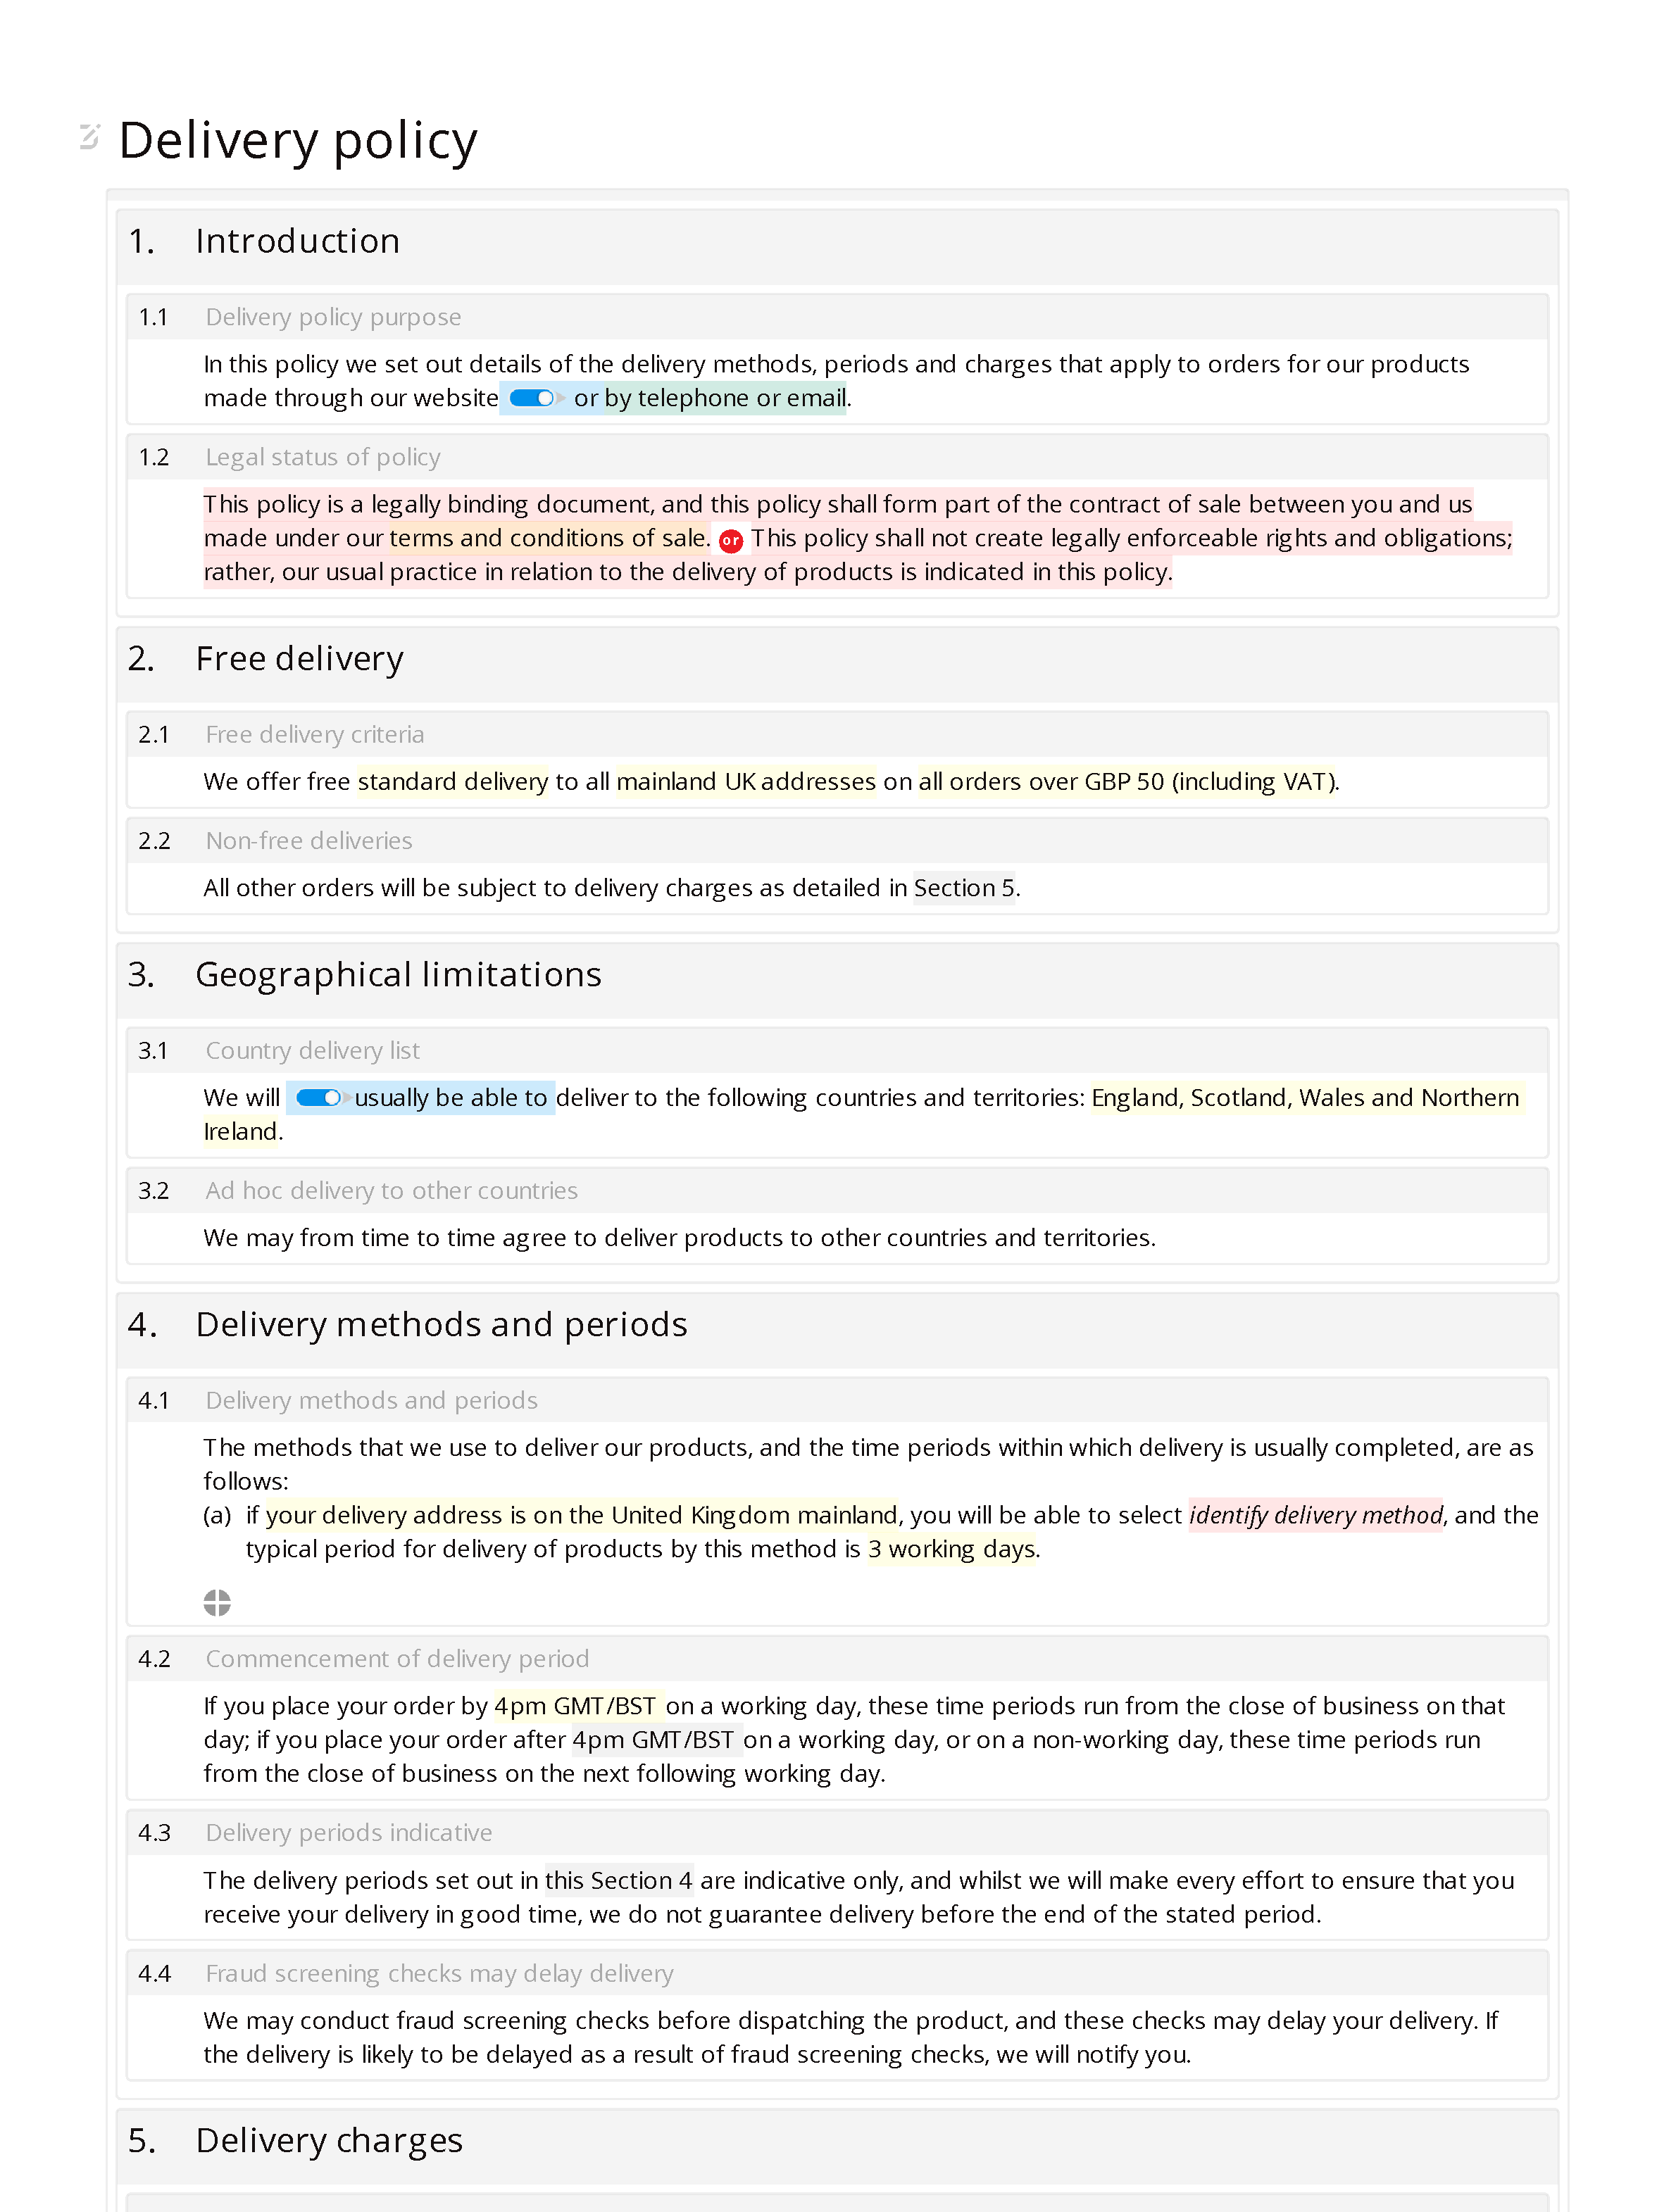 Delivery policy document editor preview